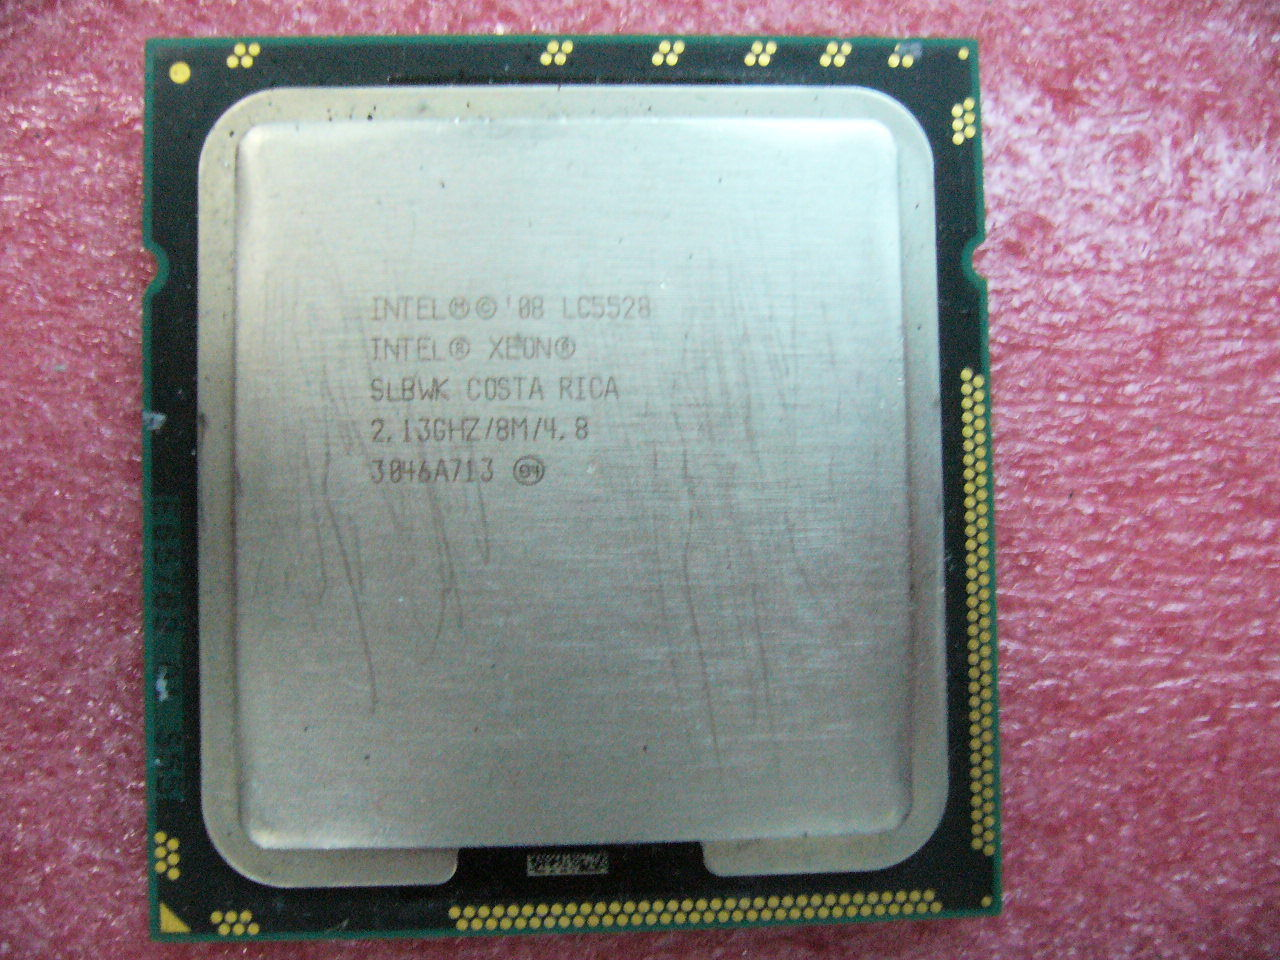 QTY 1x INTEL Quad-Cores CPU LC5528 2.13GHZ/8MB LGA1366 SLBWK